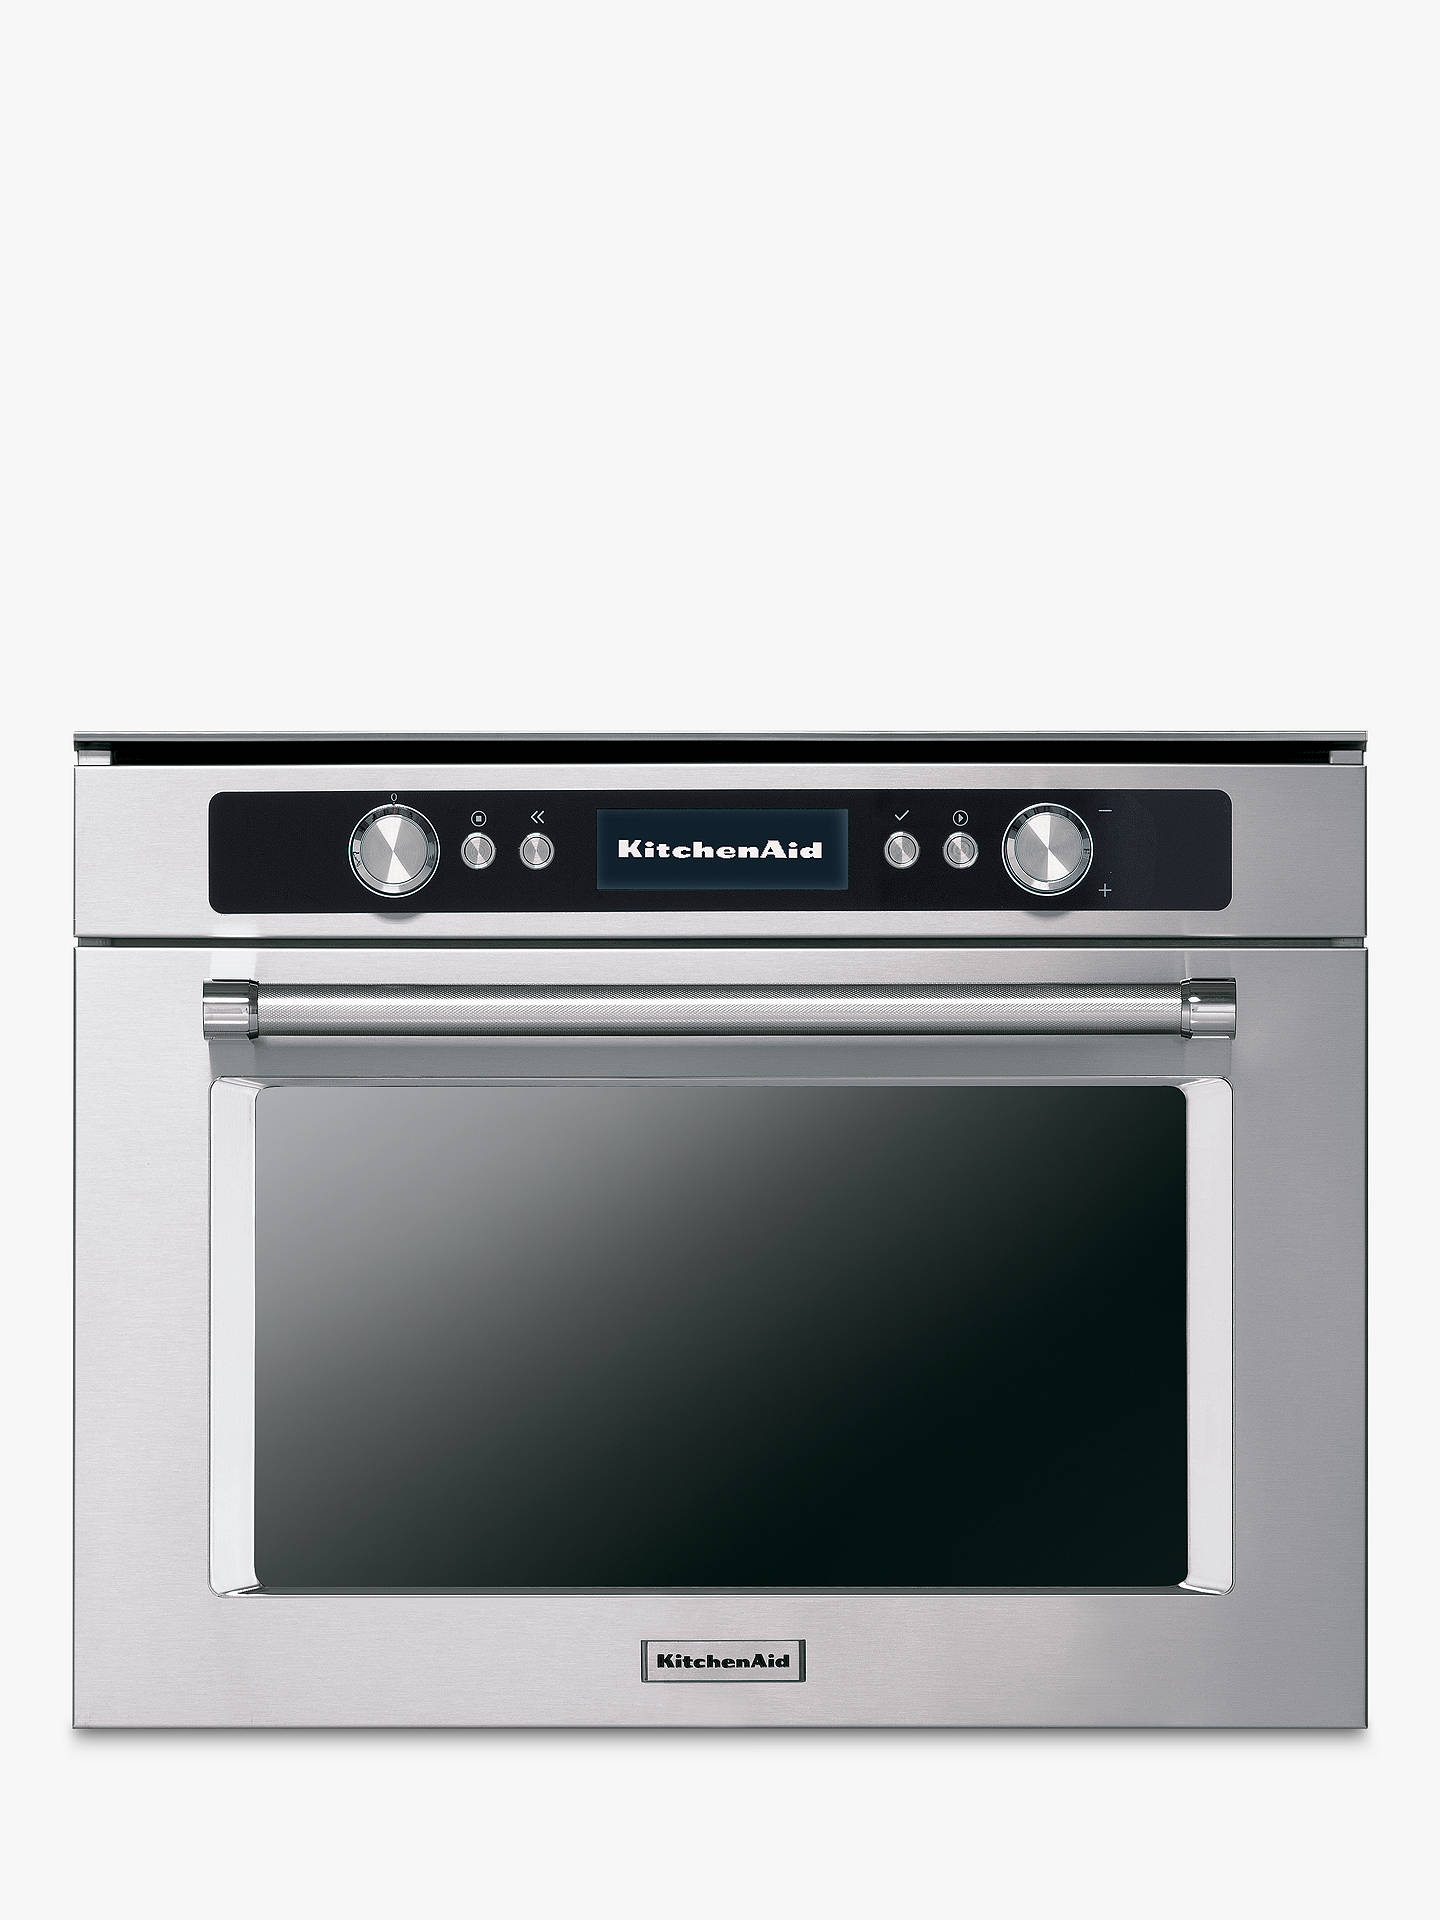 Kitchenaid Kmqcx45600 Built In Multifunction Microwave Oven Stainless Steel